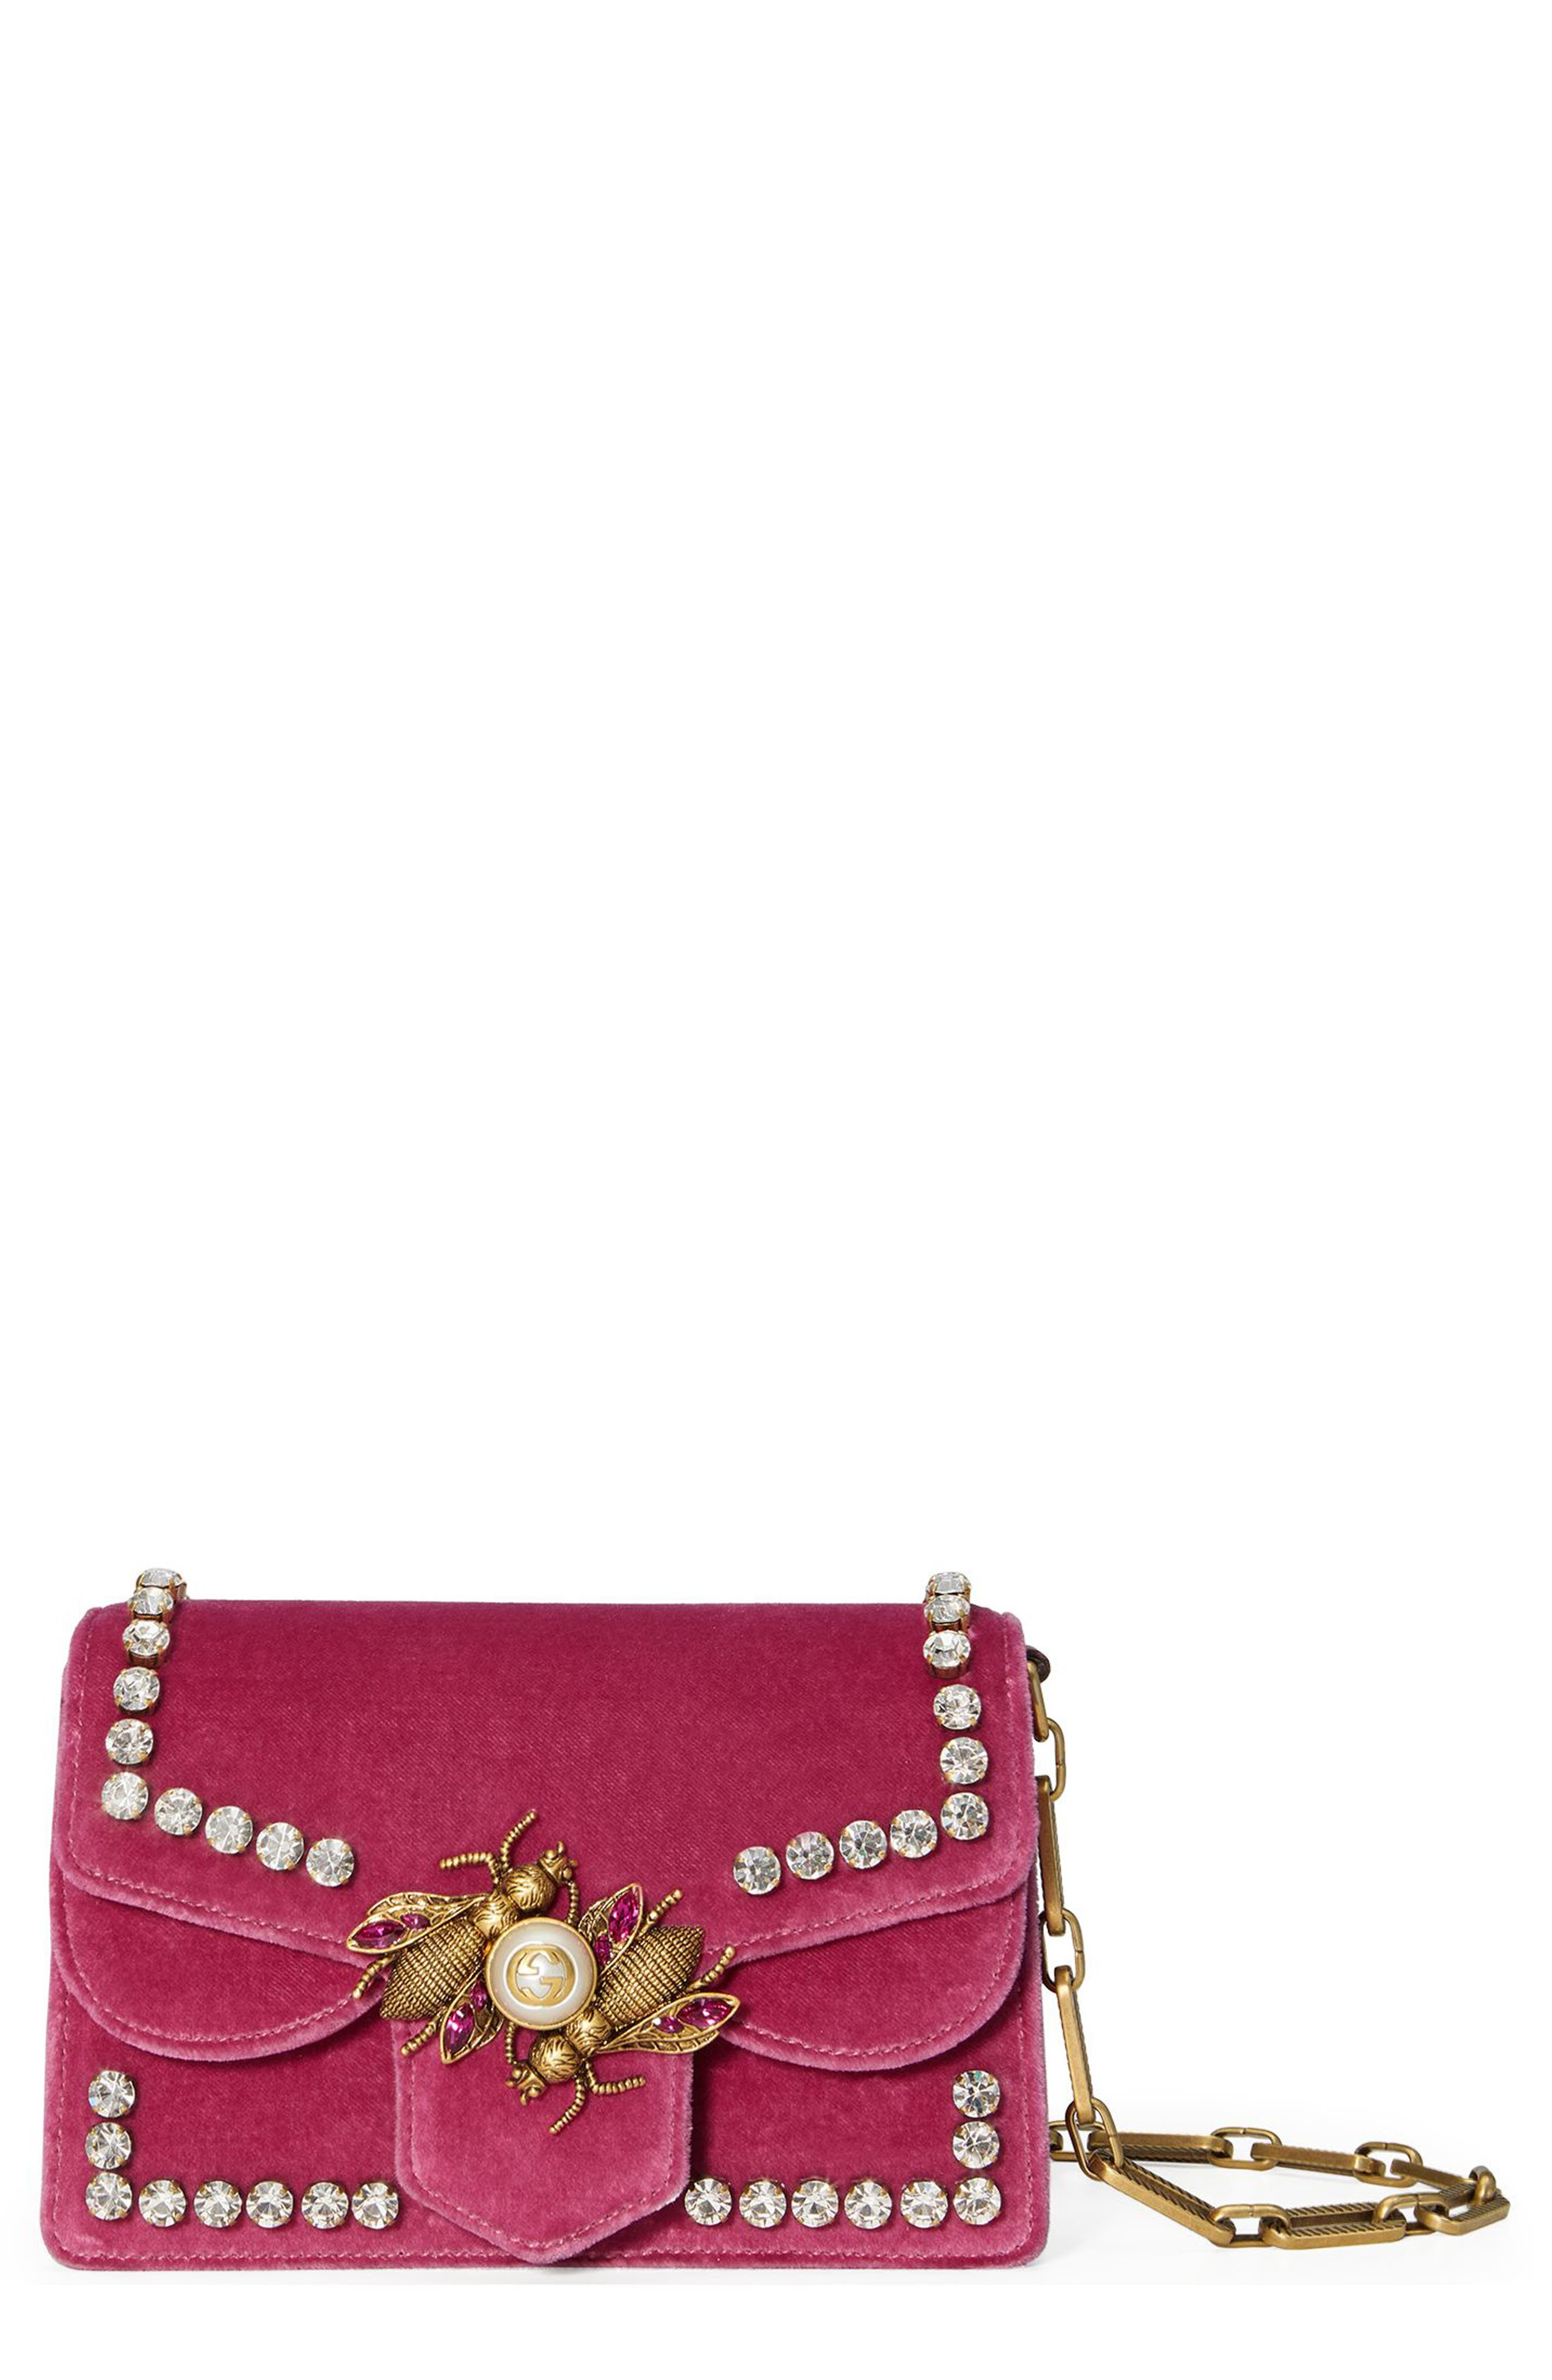 29ef6ba9610 Gucci Broadway Bee Velvet Shoulder Bag - Pink